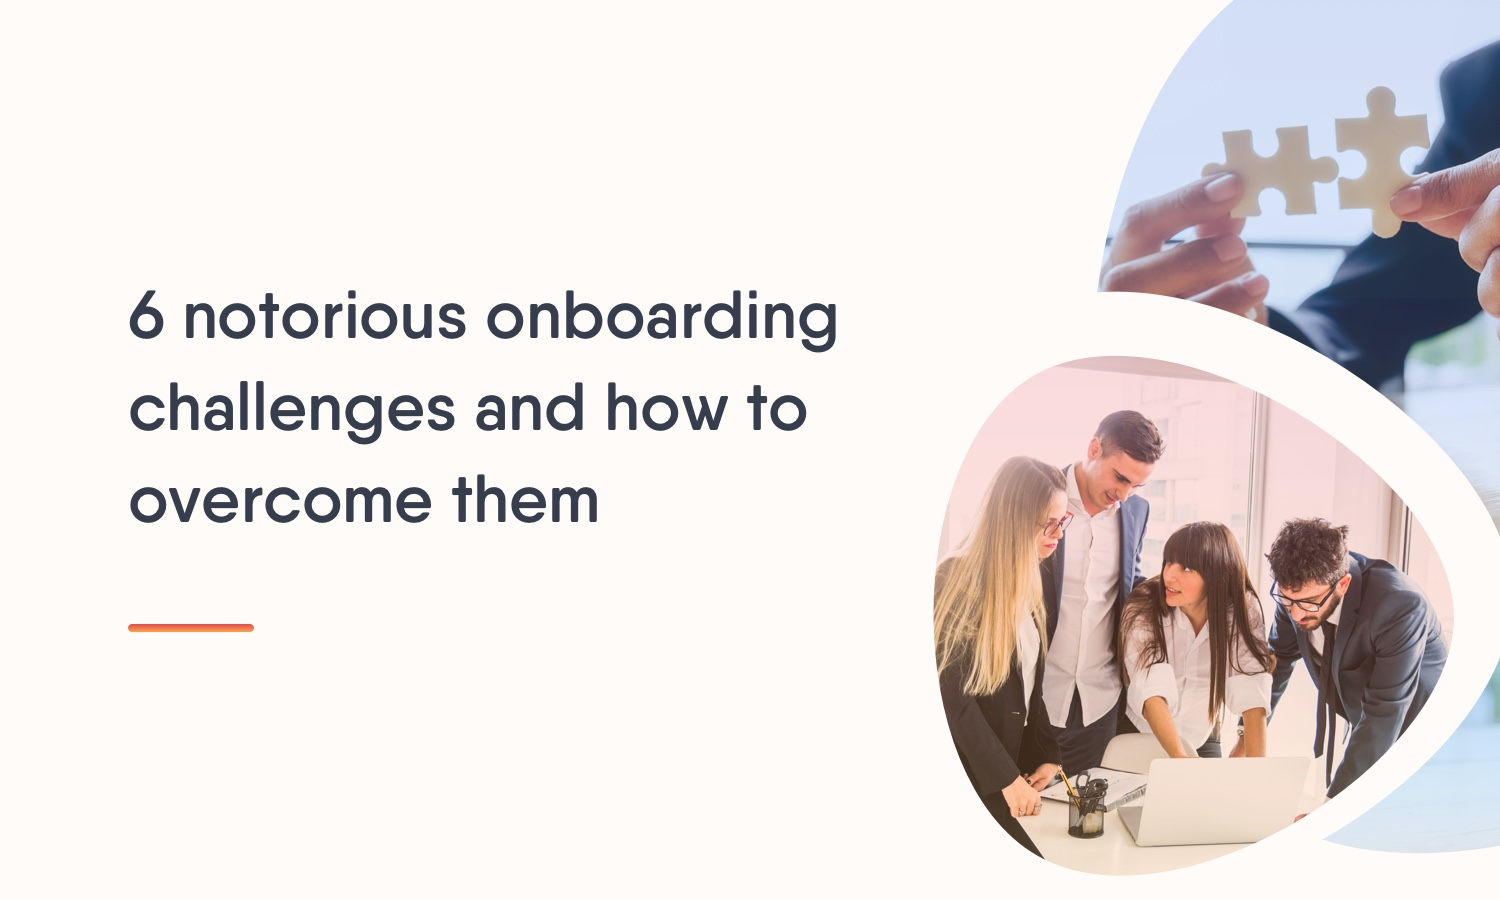 (1) Common onboarding issues Blog Image